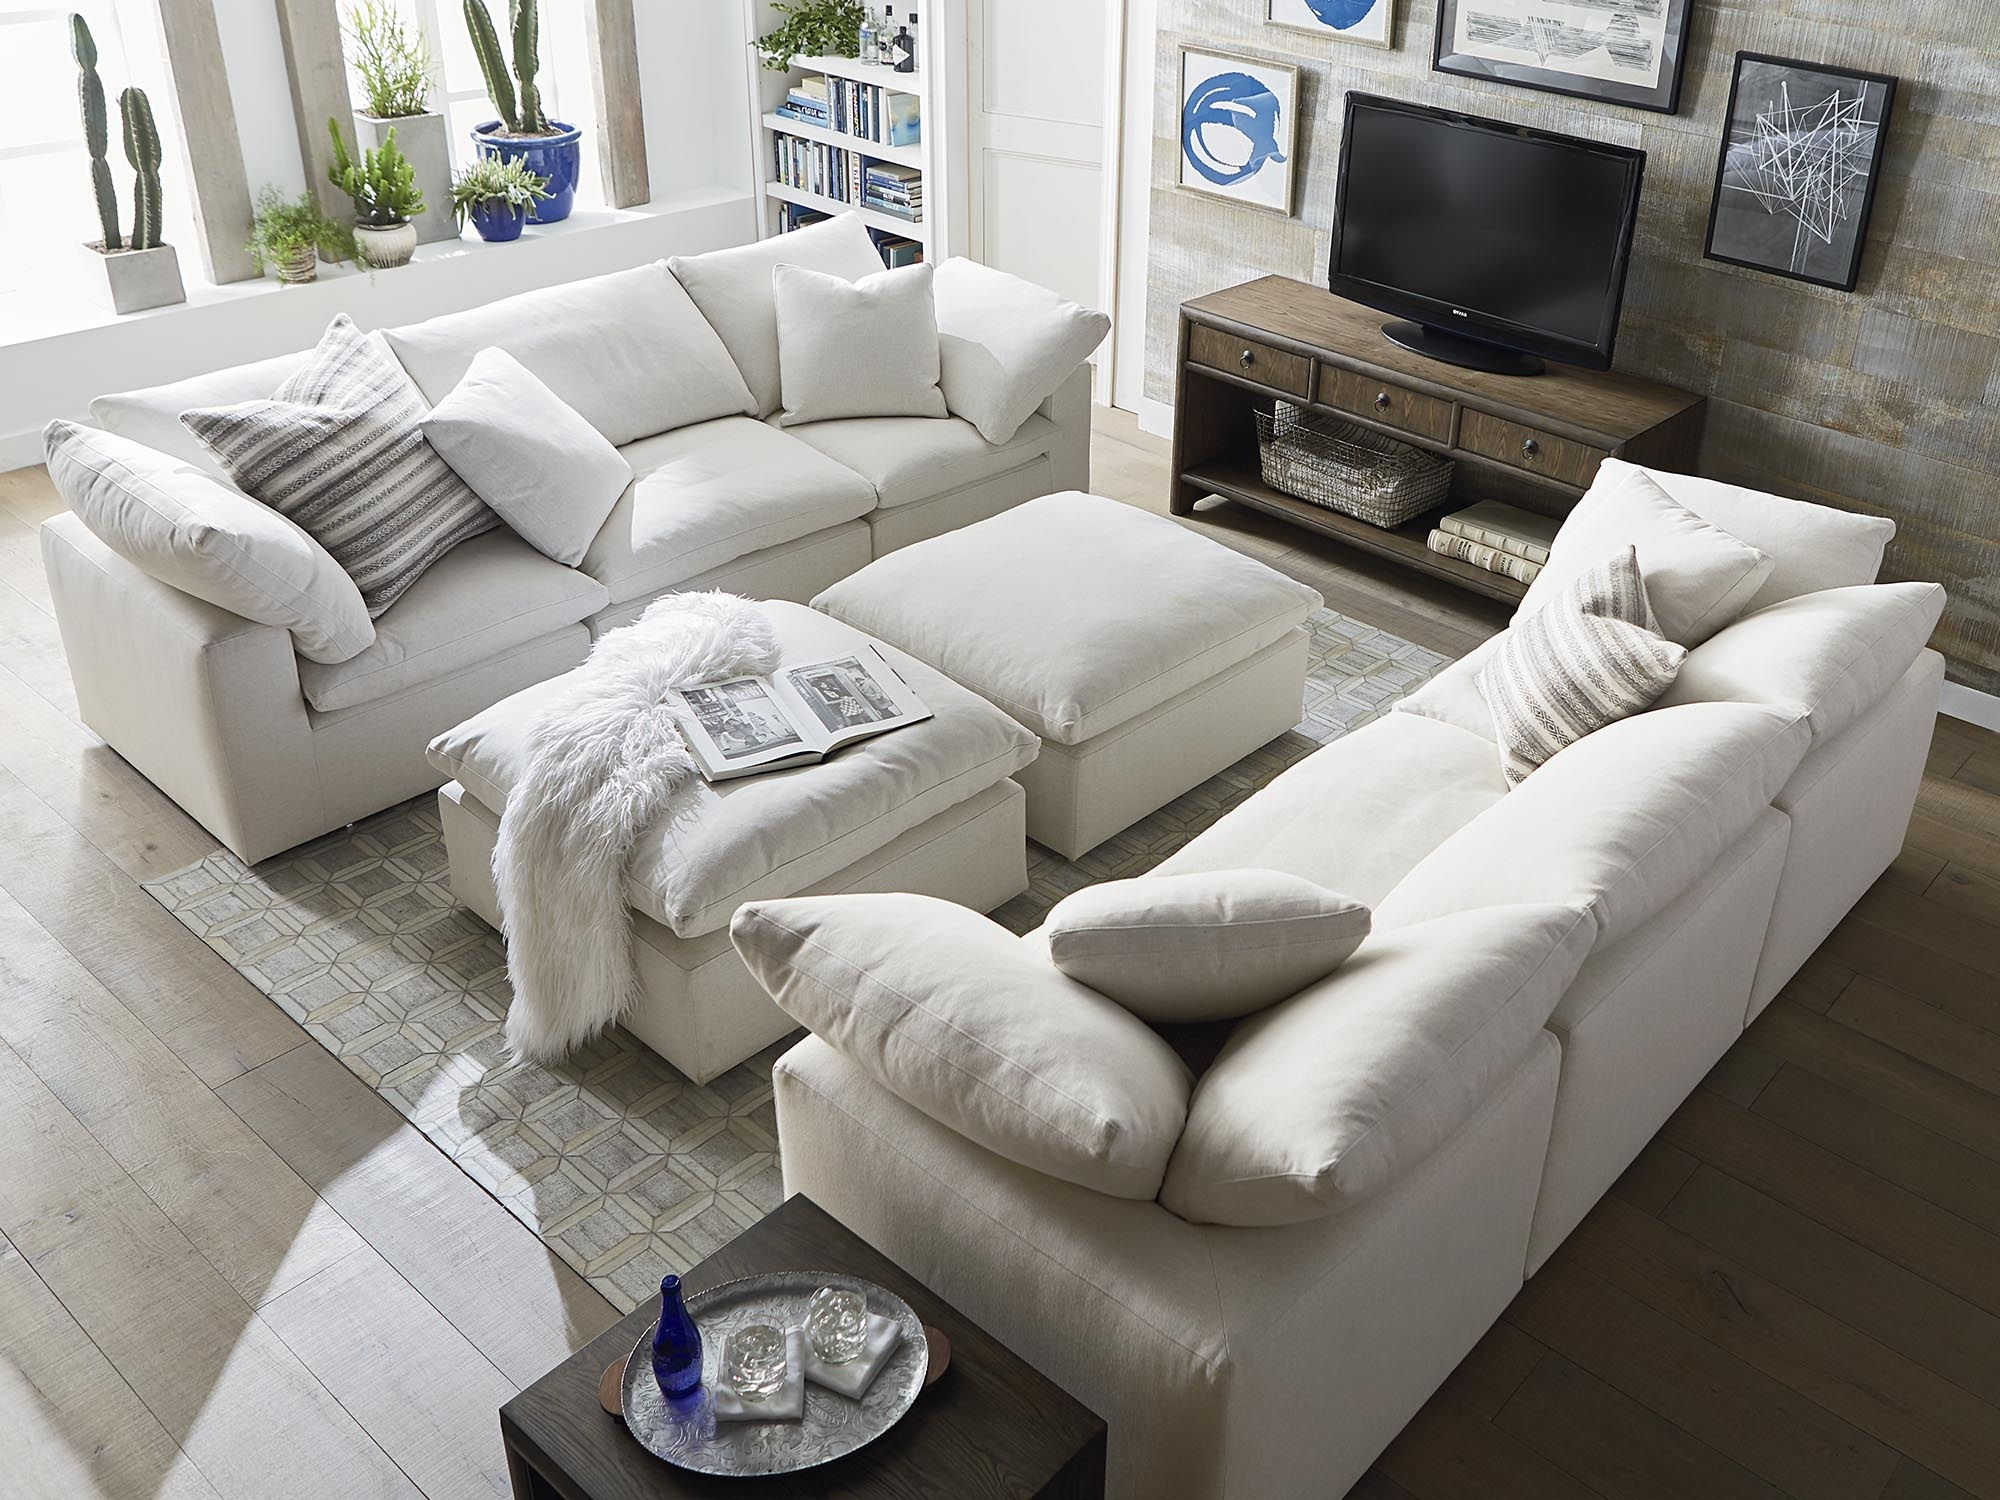 Fabric Sofas And Couchesbassett Home Furnishings Intended For Famous Scarborough Sectional Sofas (View 9 of 15)